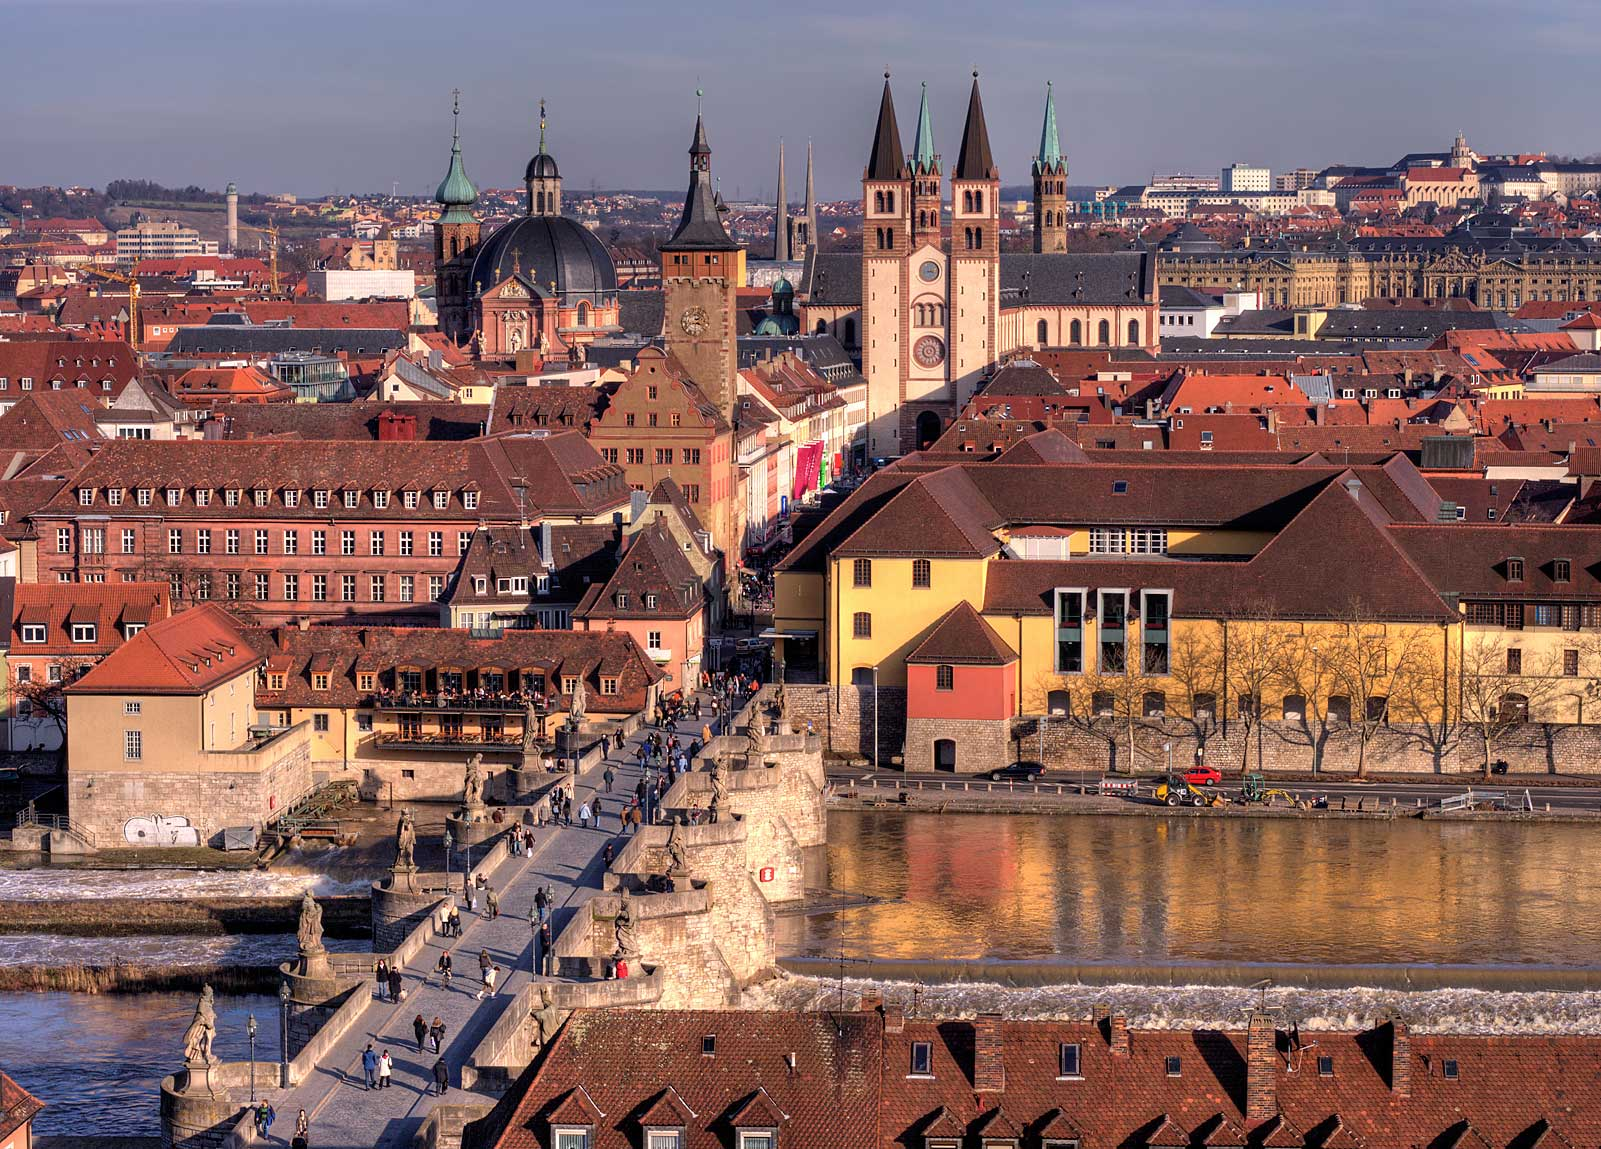 Romantic Road In Germany Romantic Road In Germany Hotels - Germany map romantic road